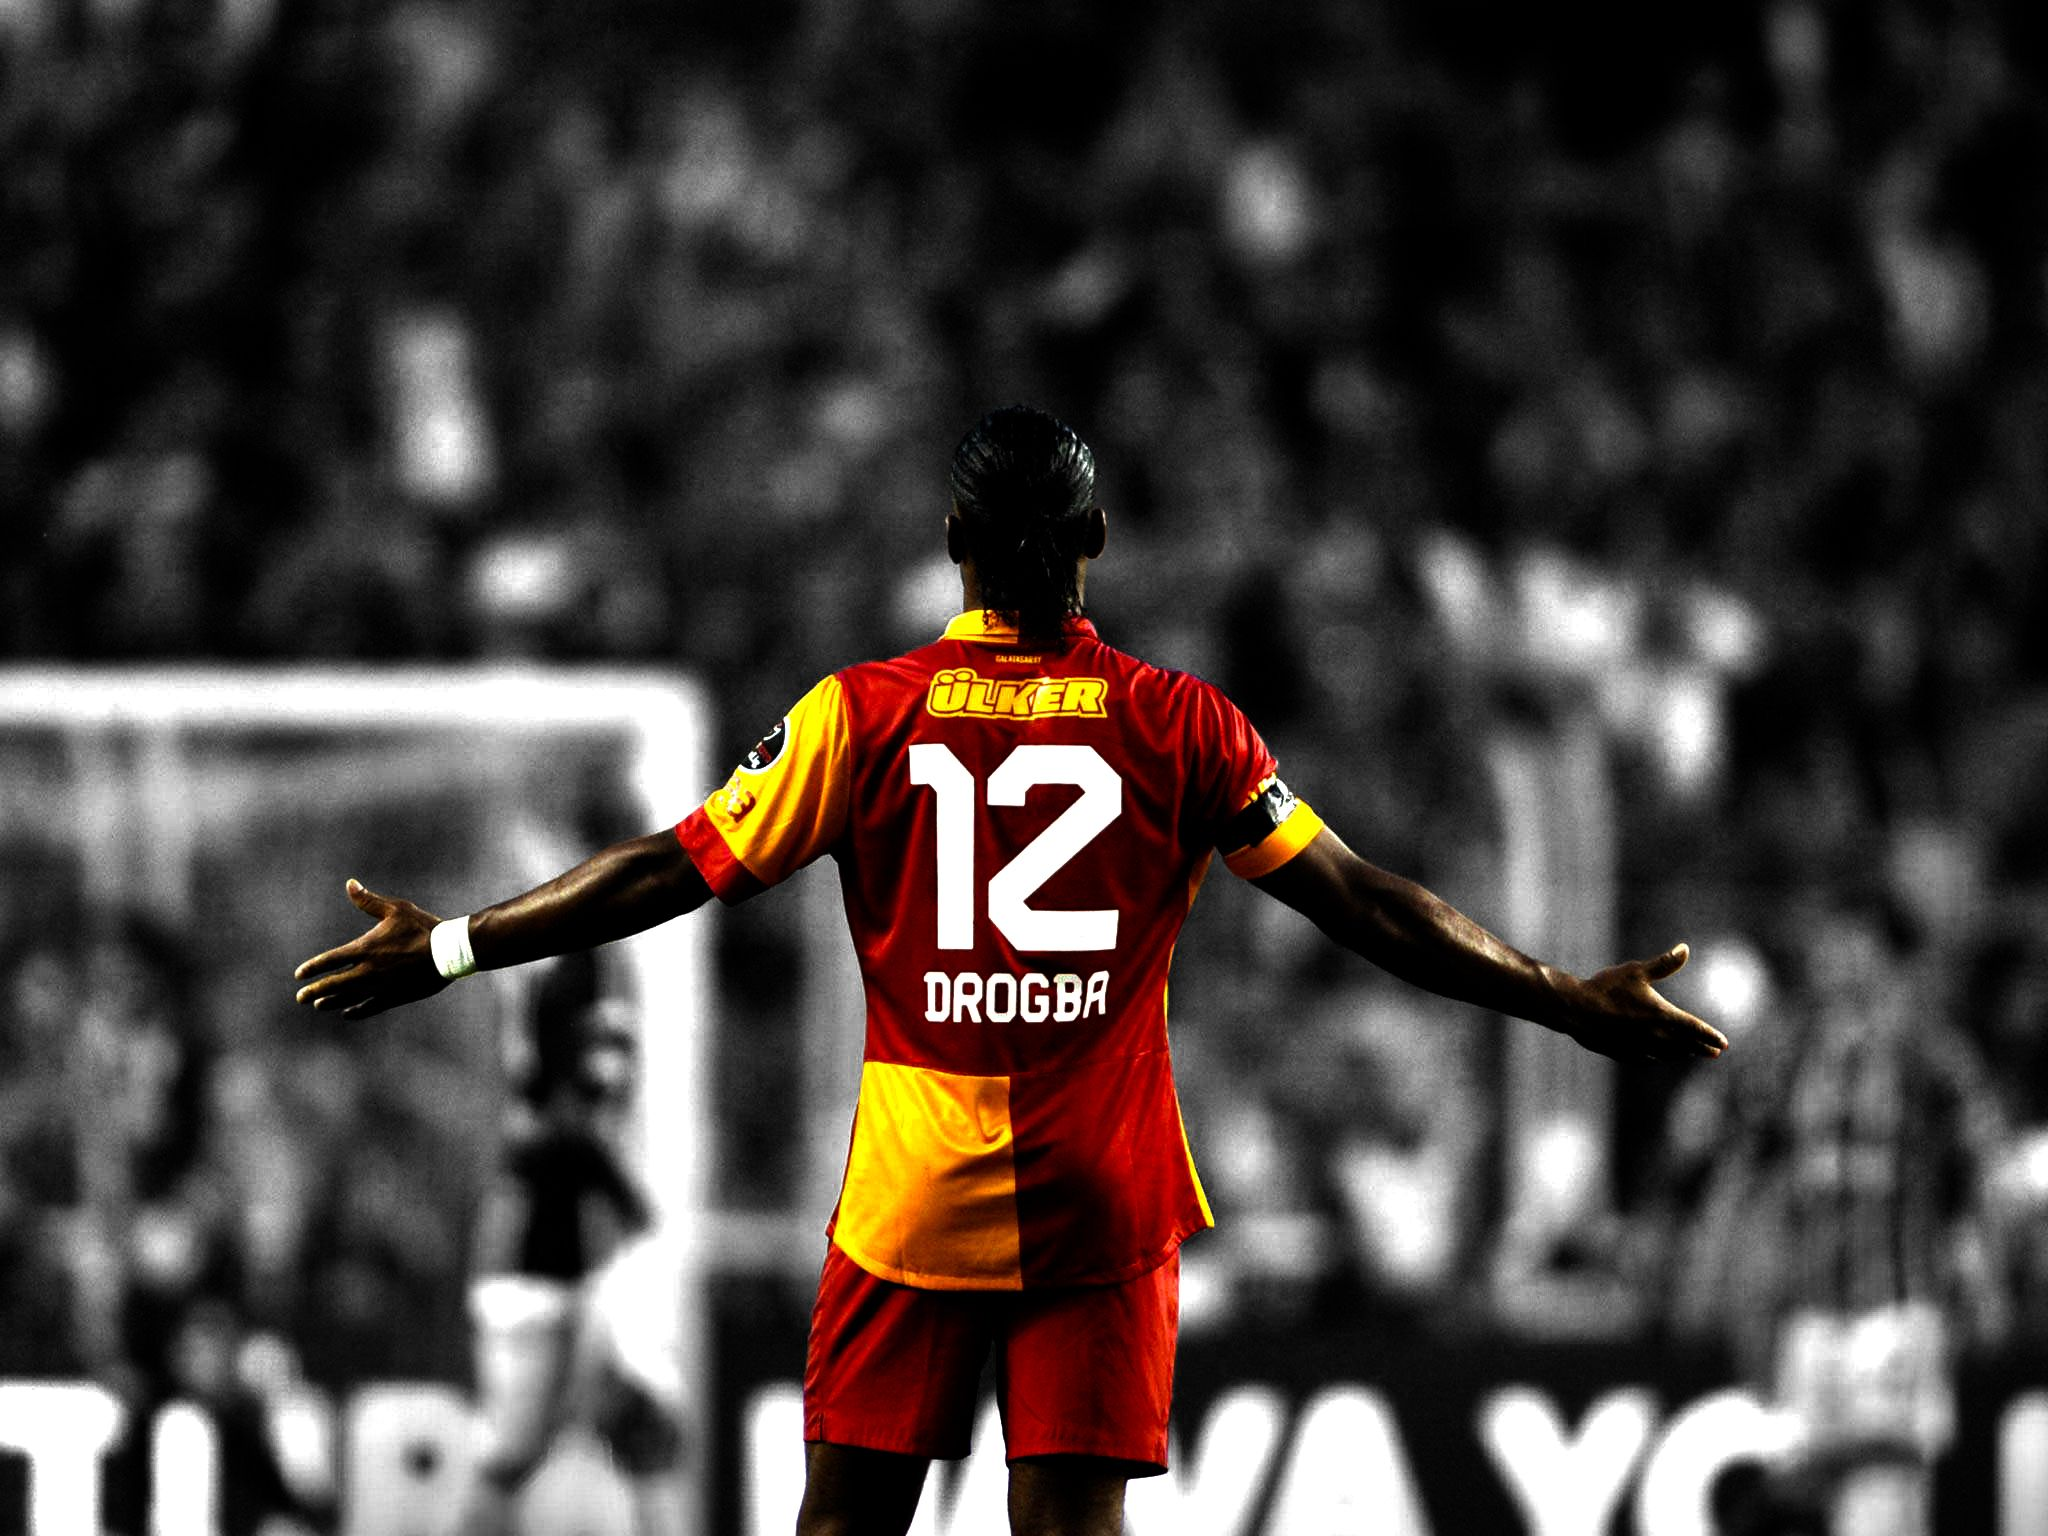 Didier, Drogba, Galatasaray, Lion, black, wallpapers , Pc backgrounds, free photos - HD wallpaper desktop backgrounds